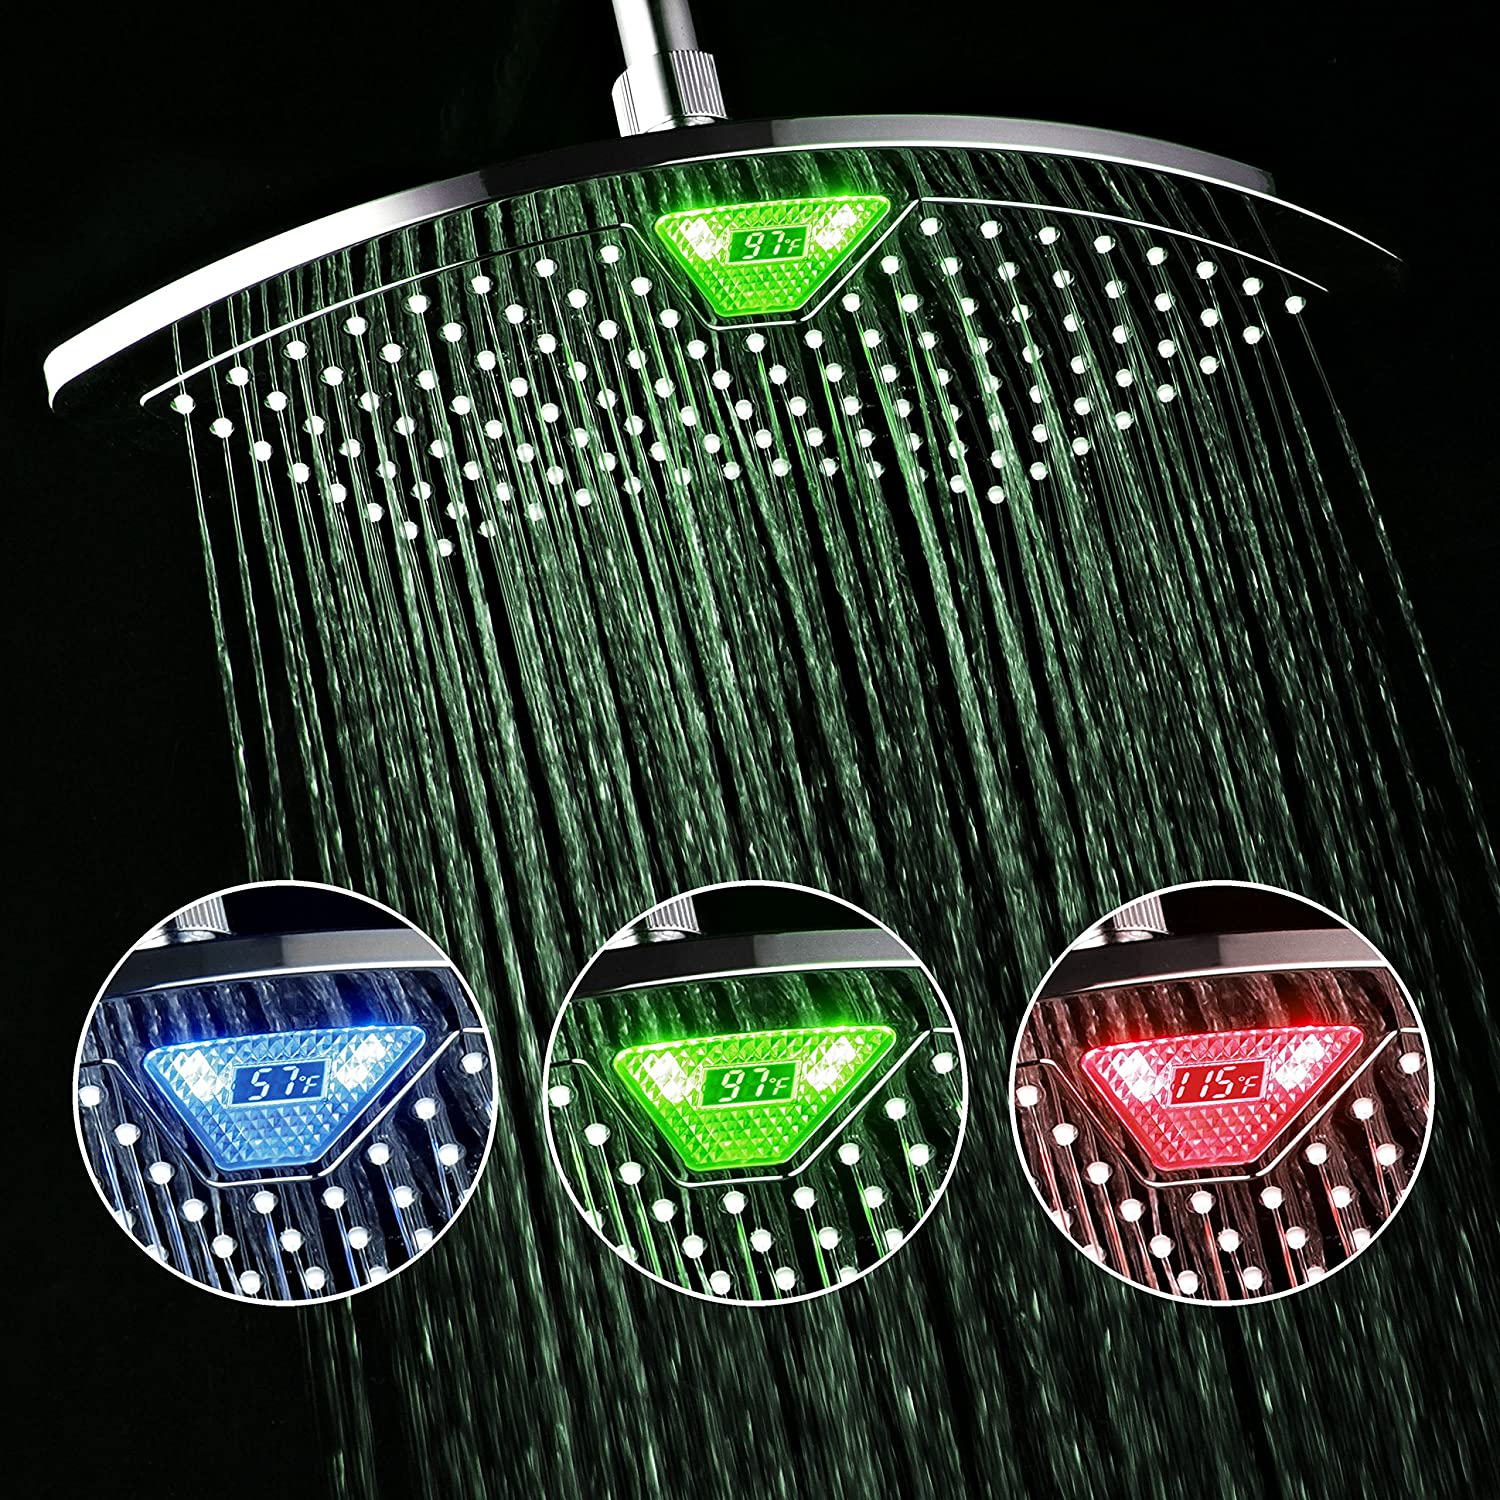 Shower Head that changes color based on the temperature of the water